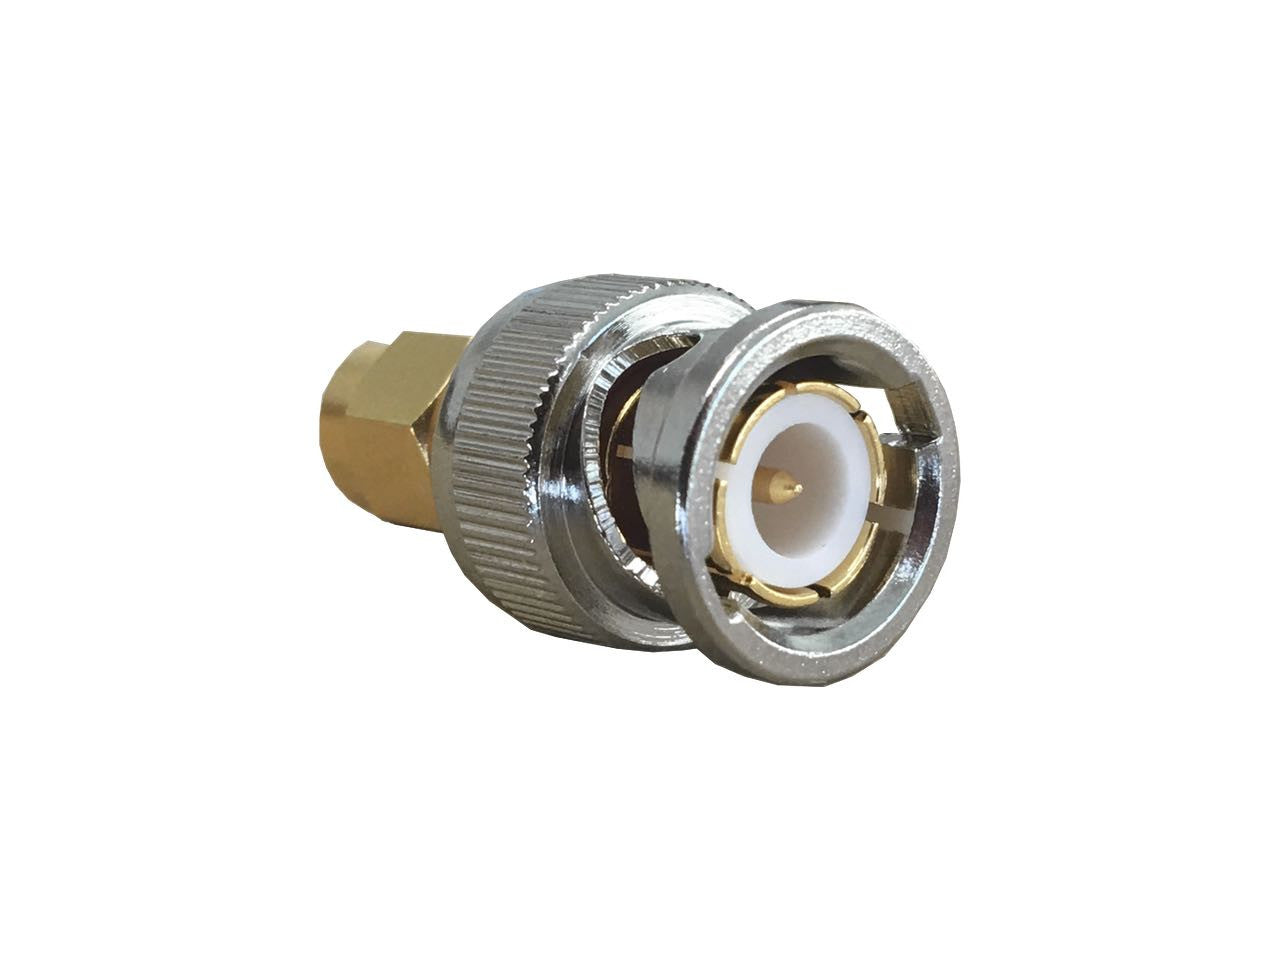 Male SMA to Male BNC Adapter